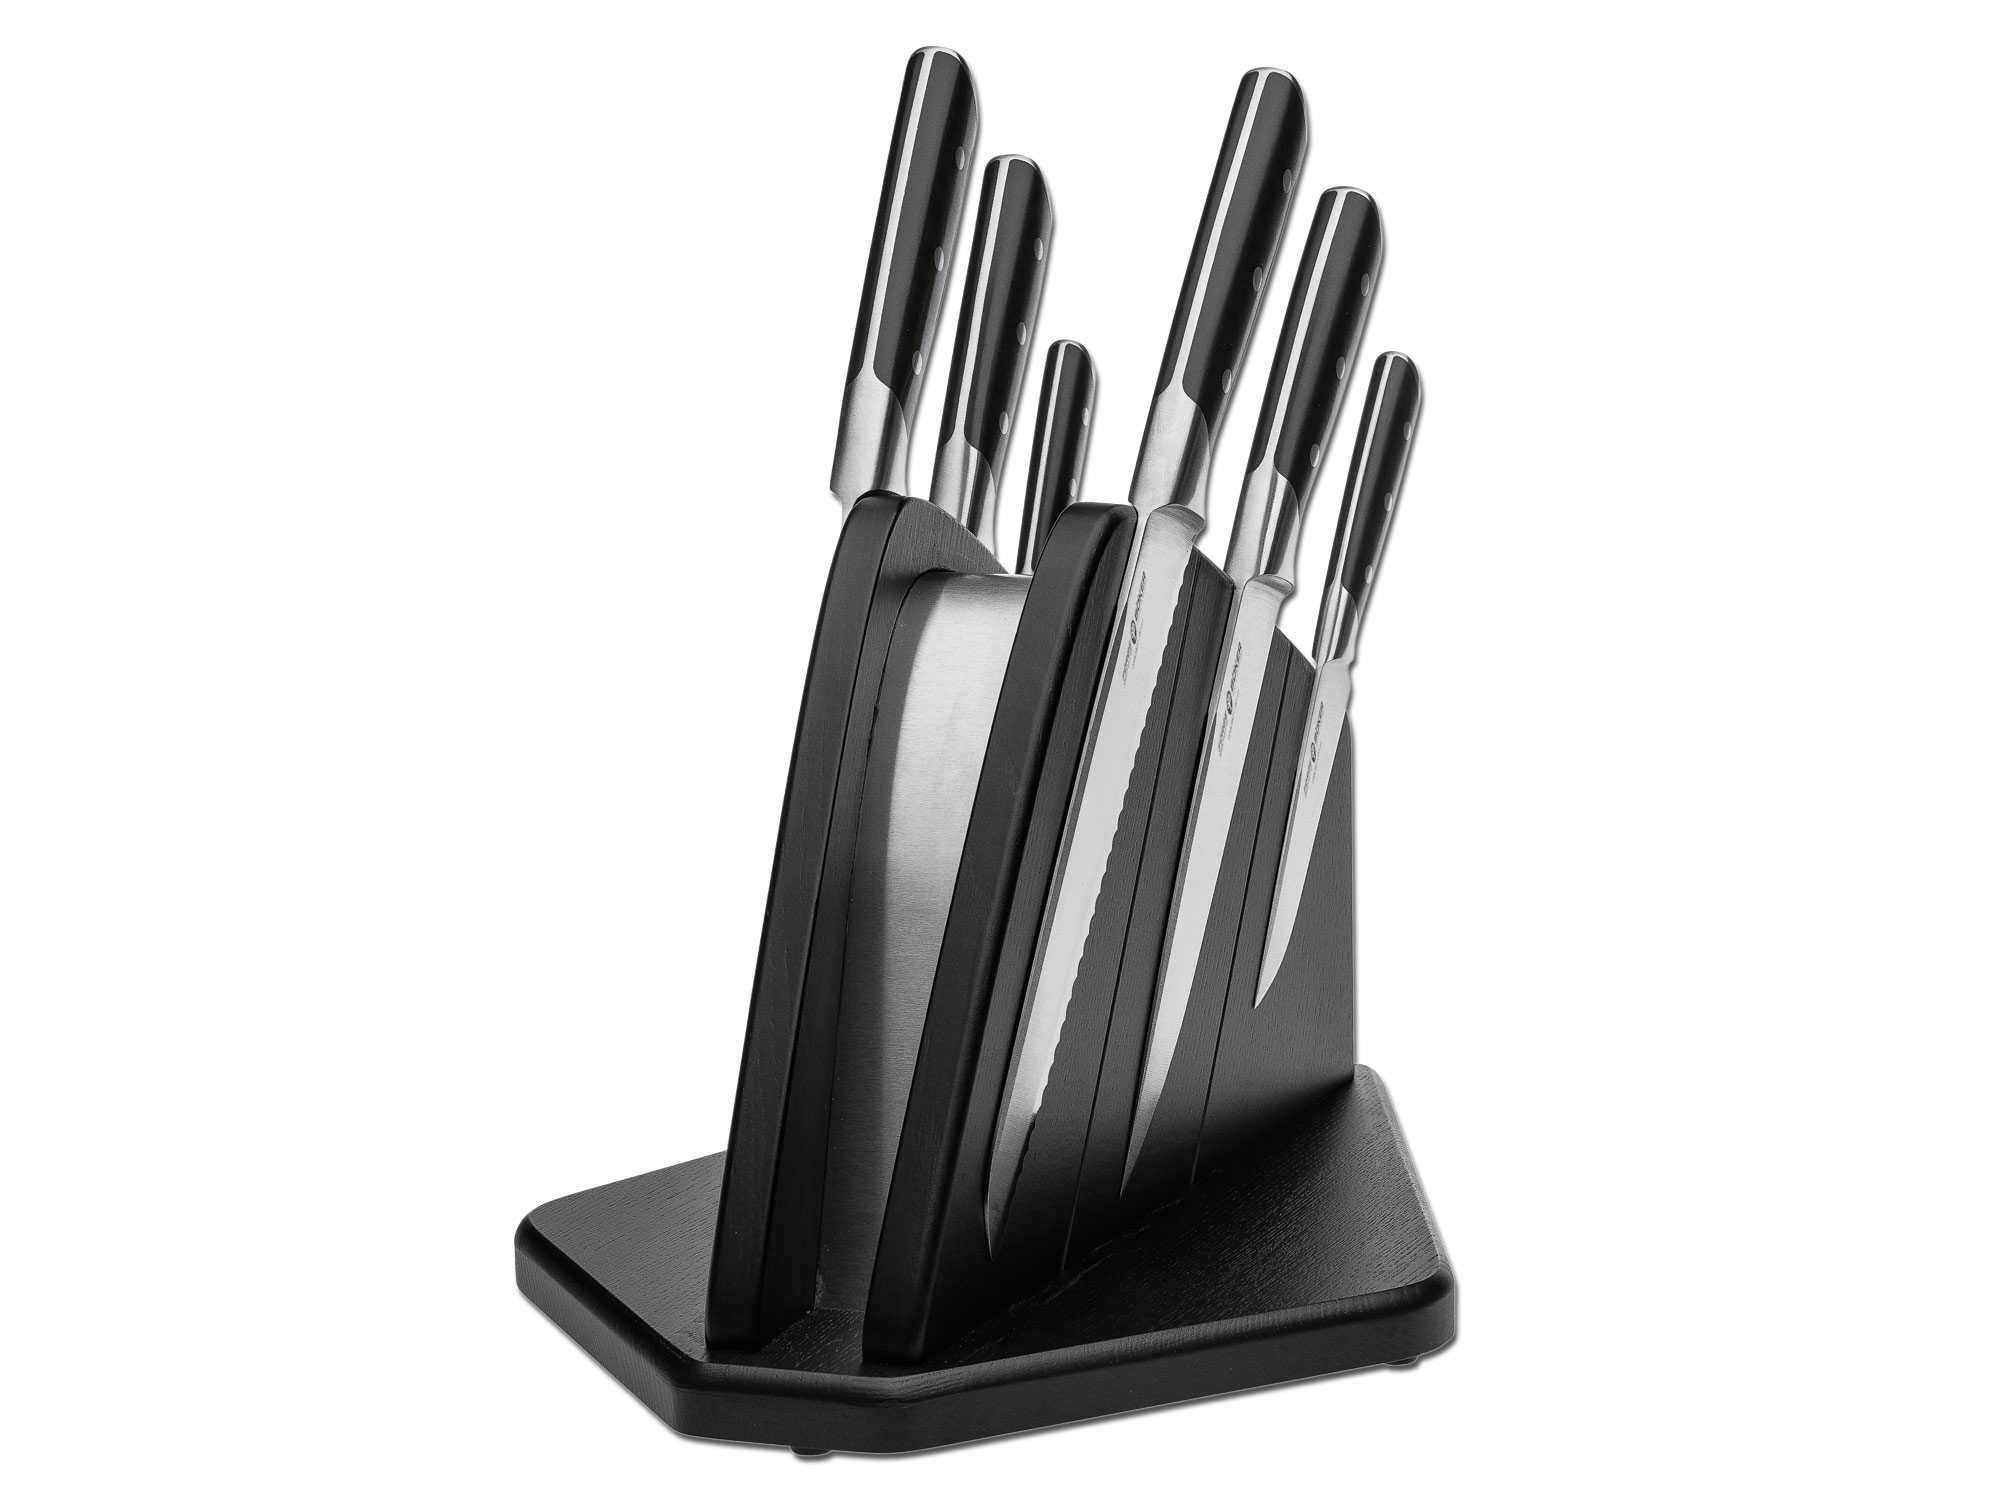 Charming hampton forge knife set for kitchen with hampton forge cutlery set